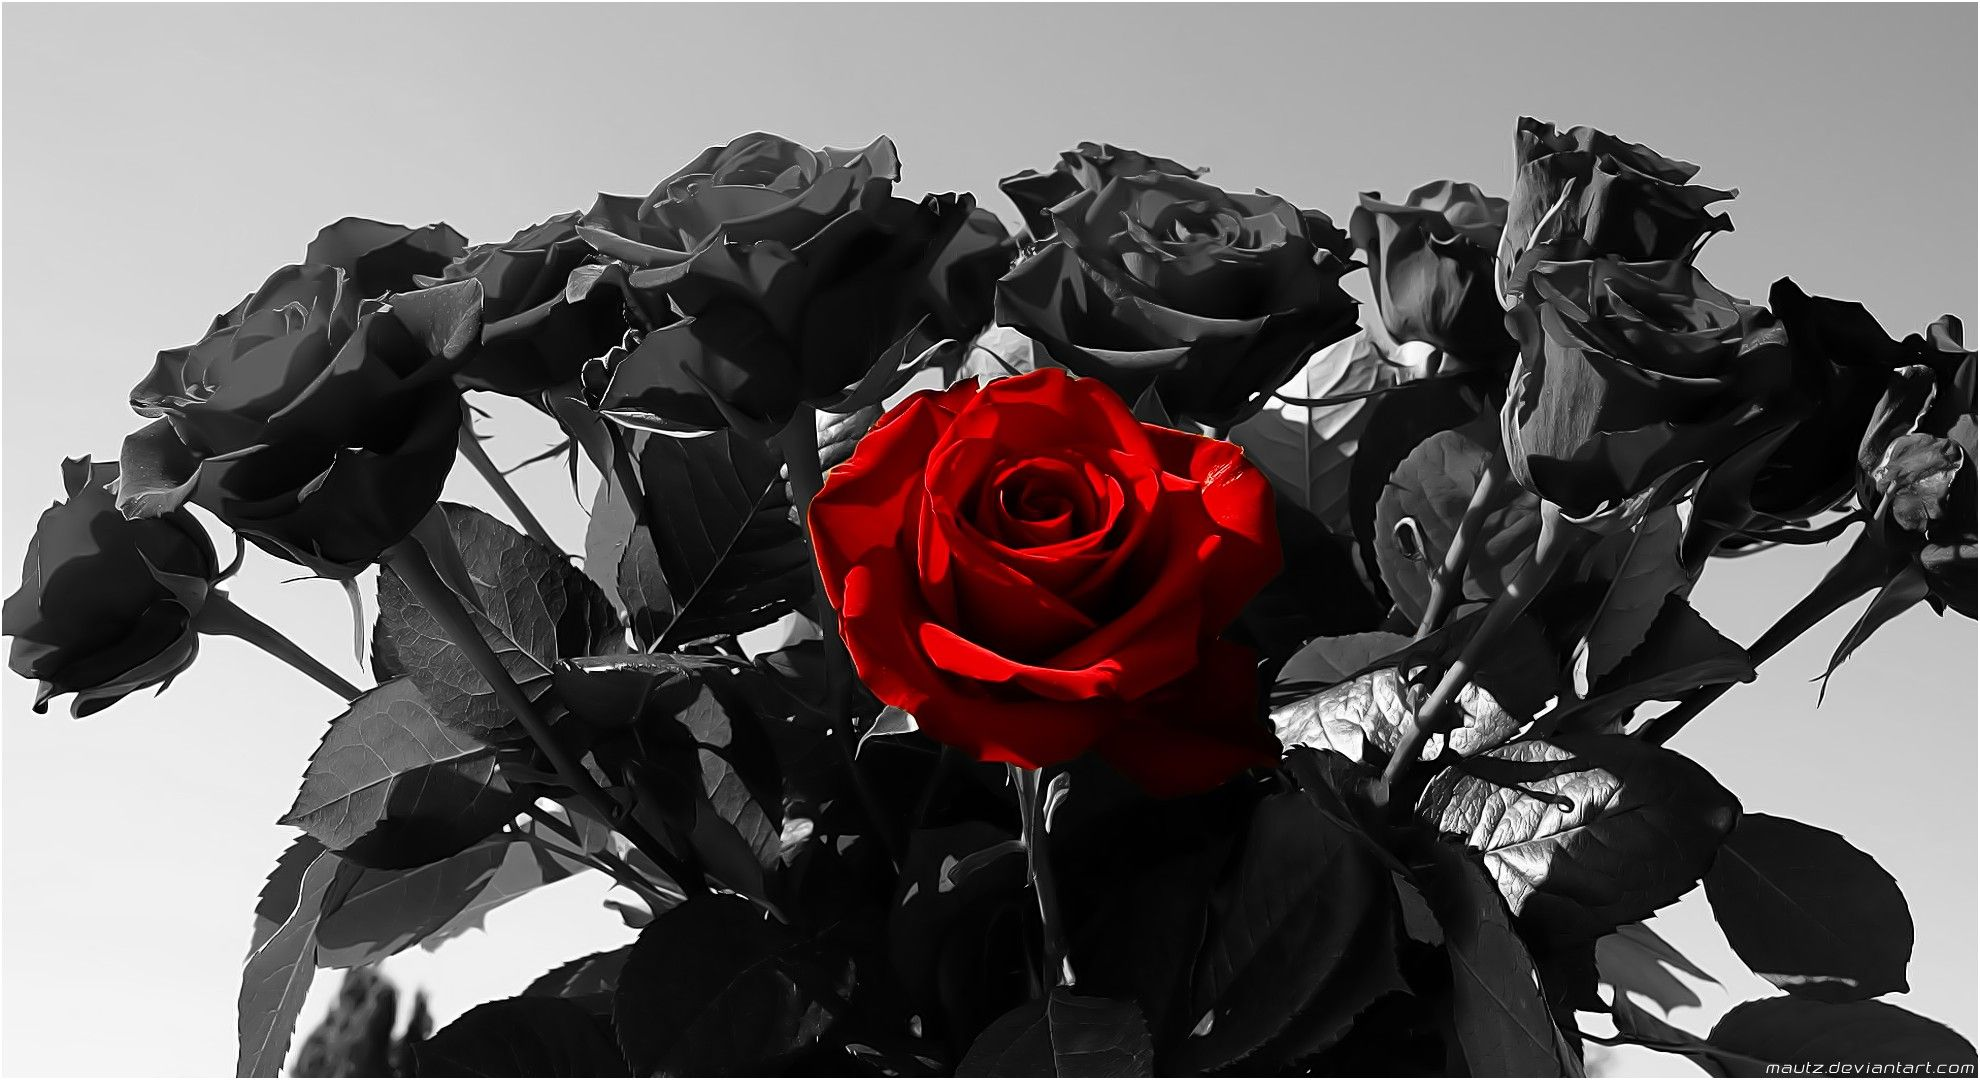 Awesome Red Rose In Black and White Background di 2020